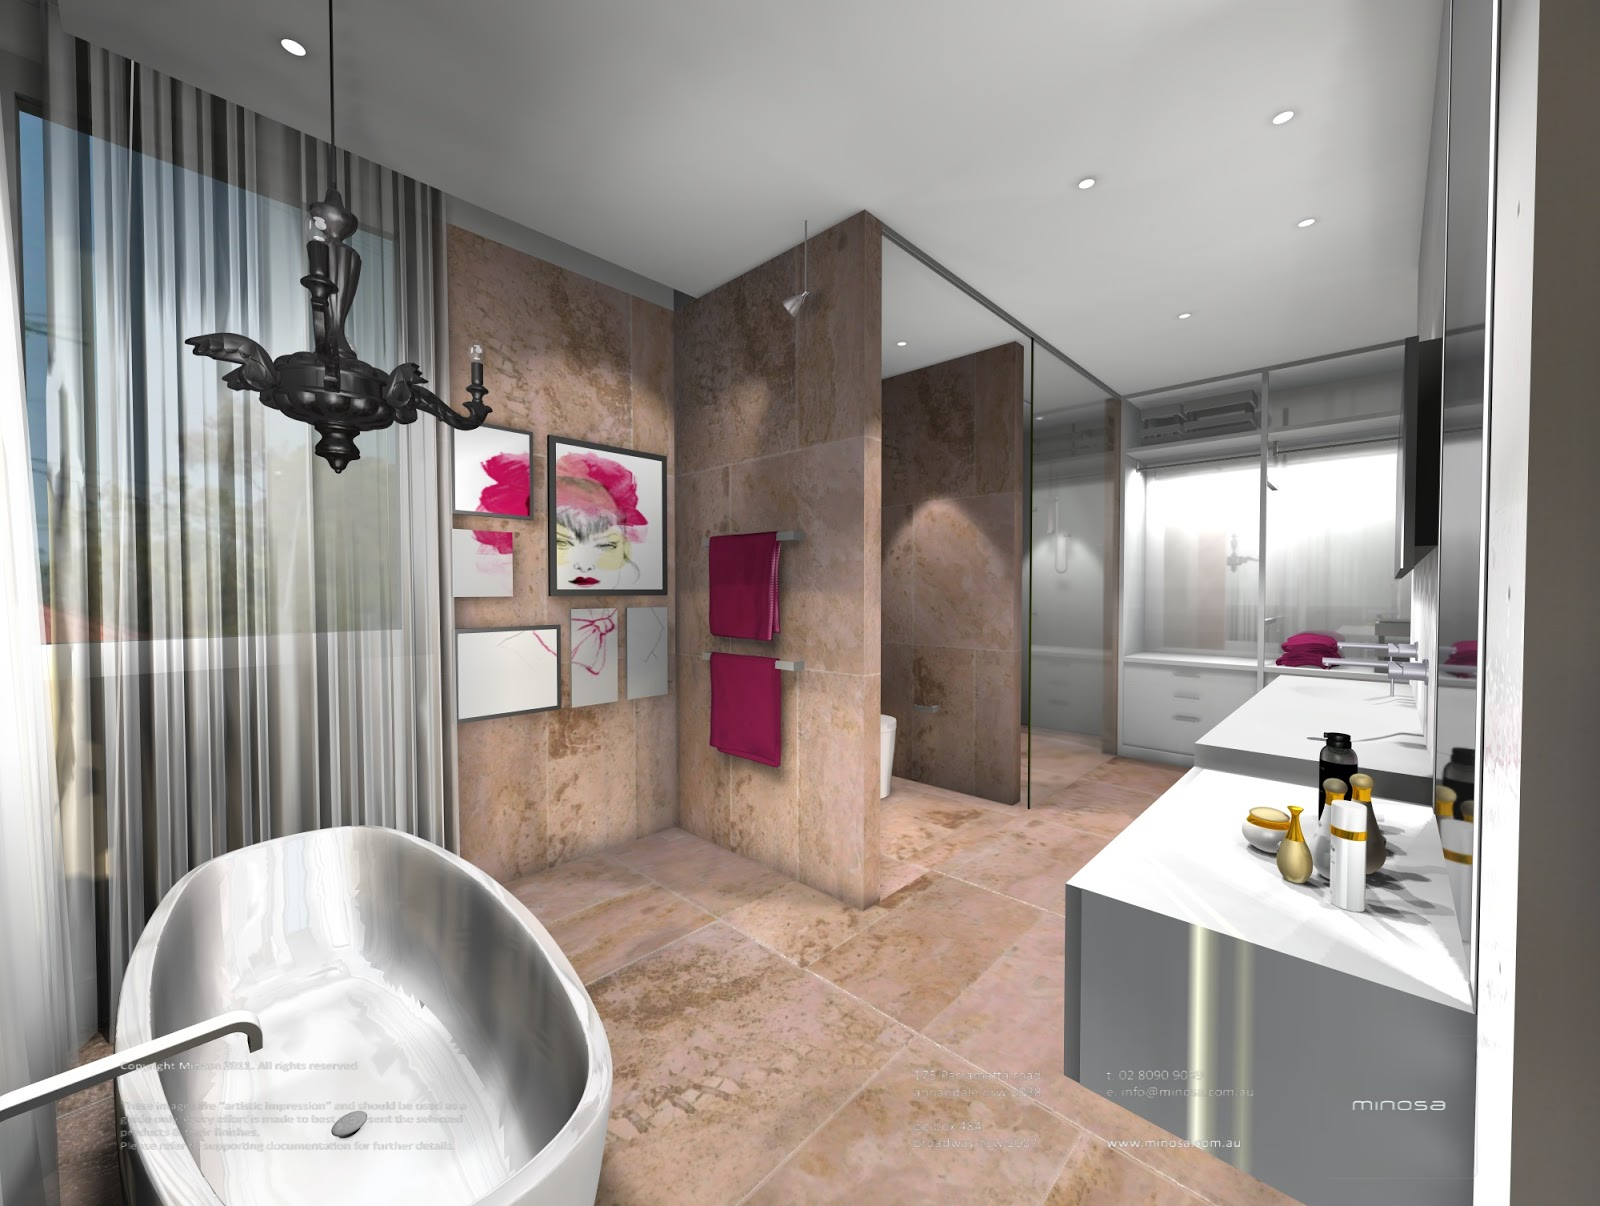 Minosa New Minosa Bathroom Design Resort Style Ensuite